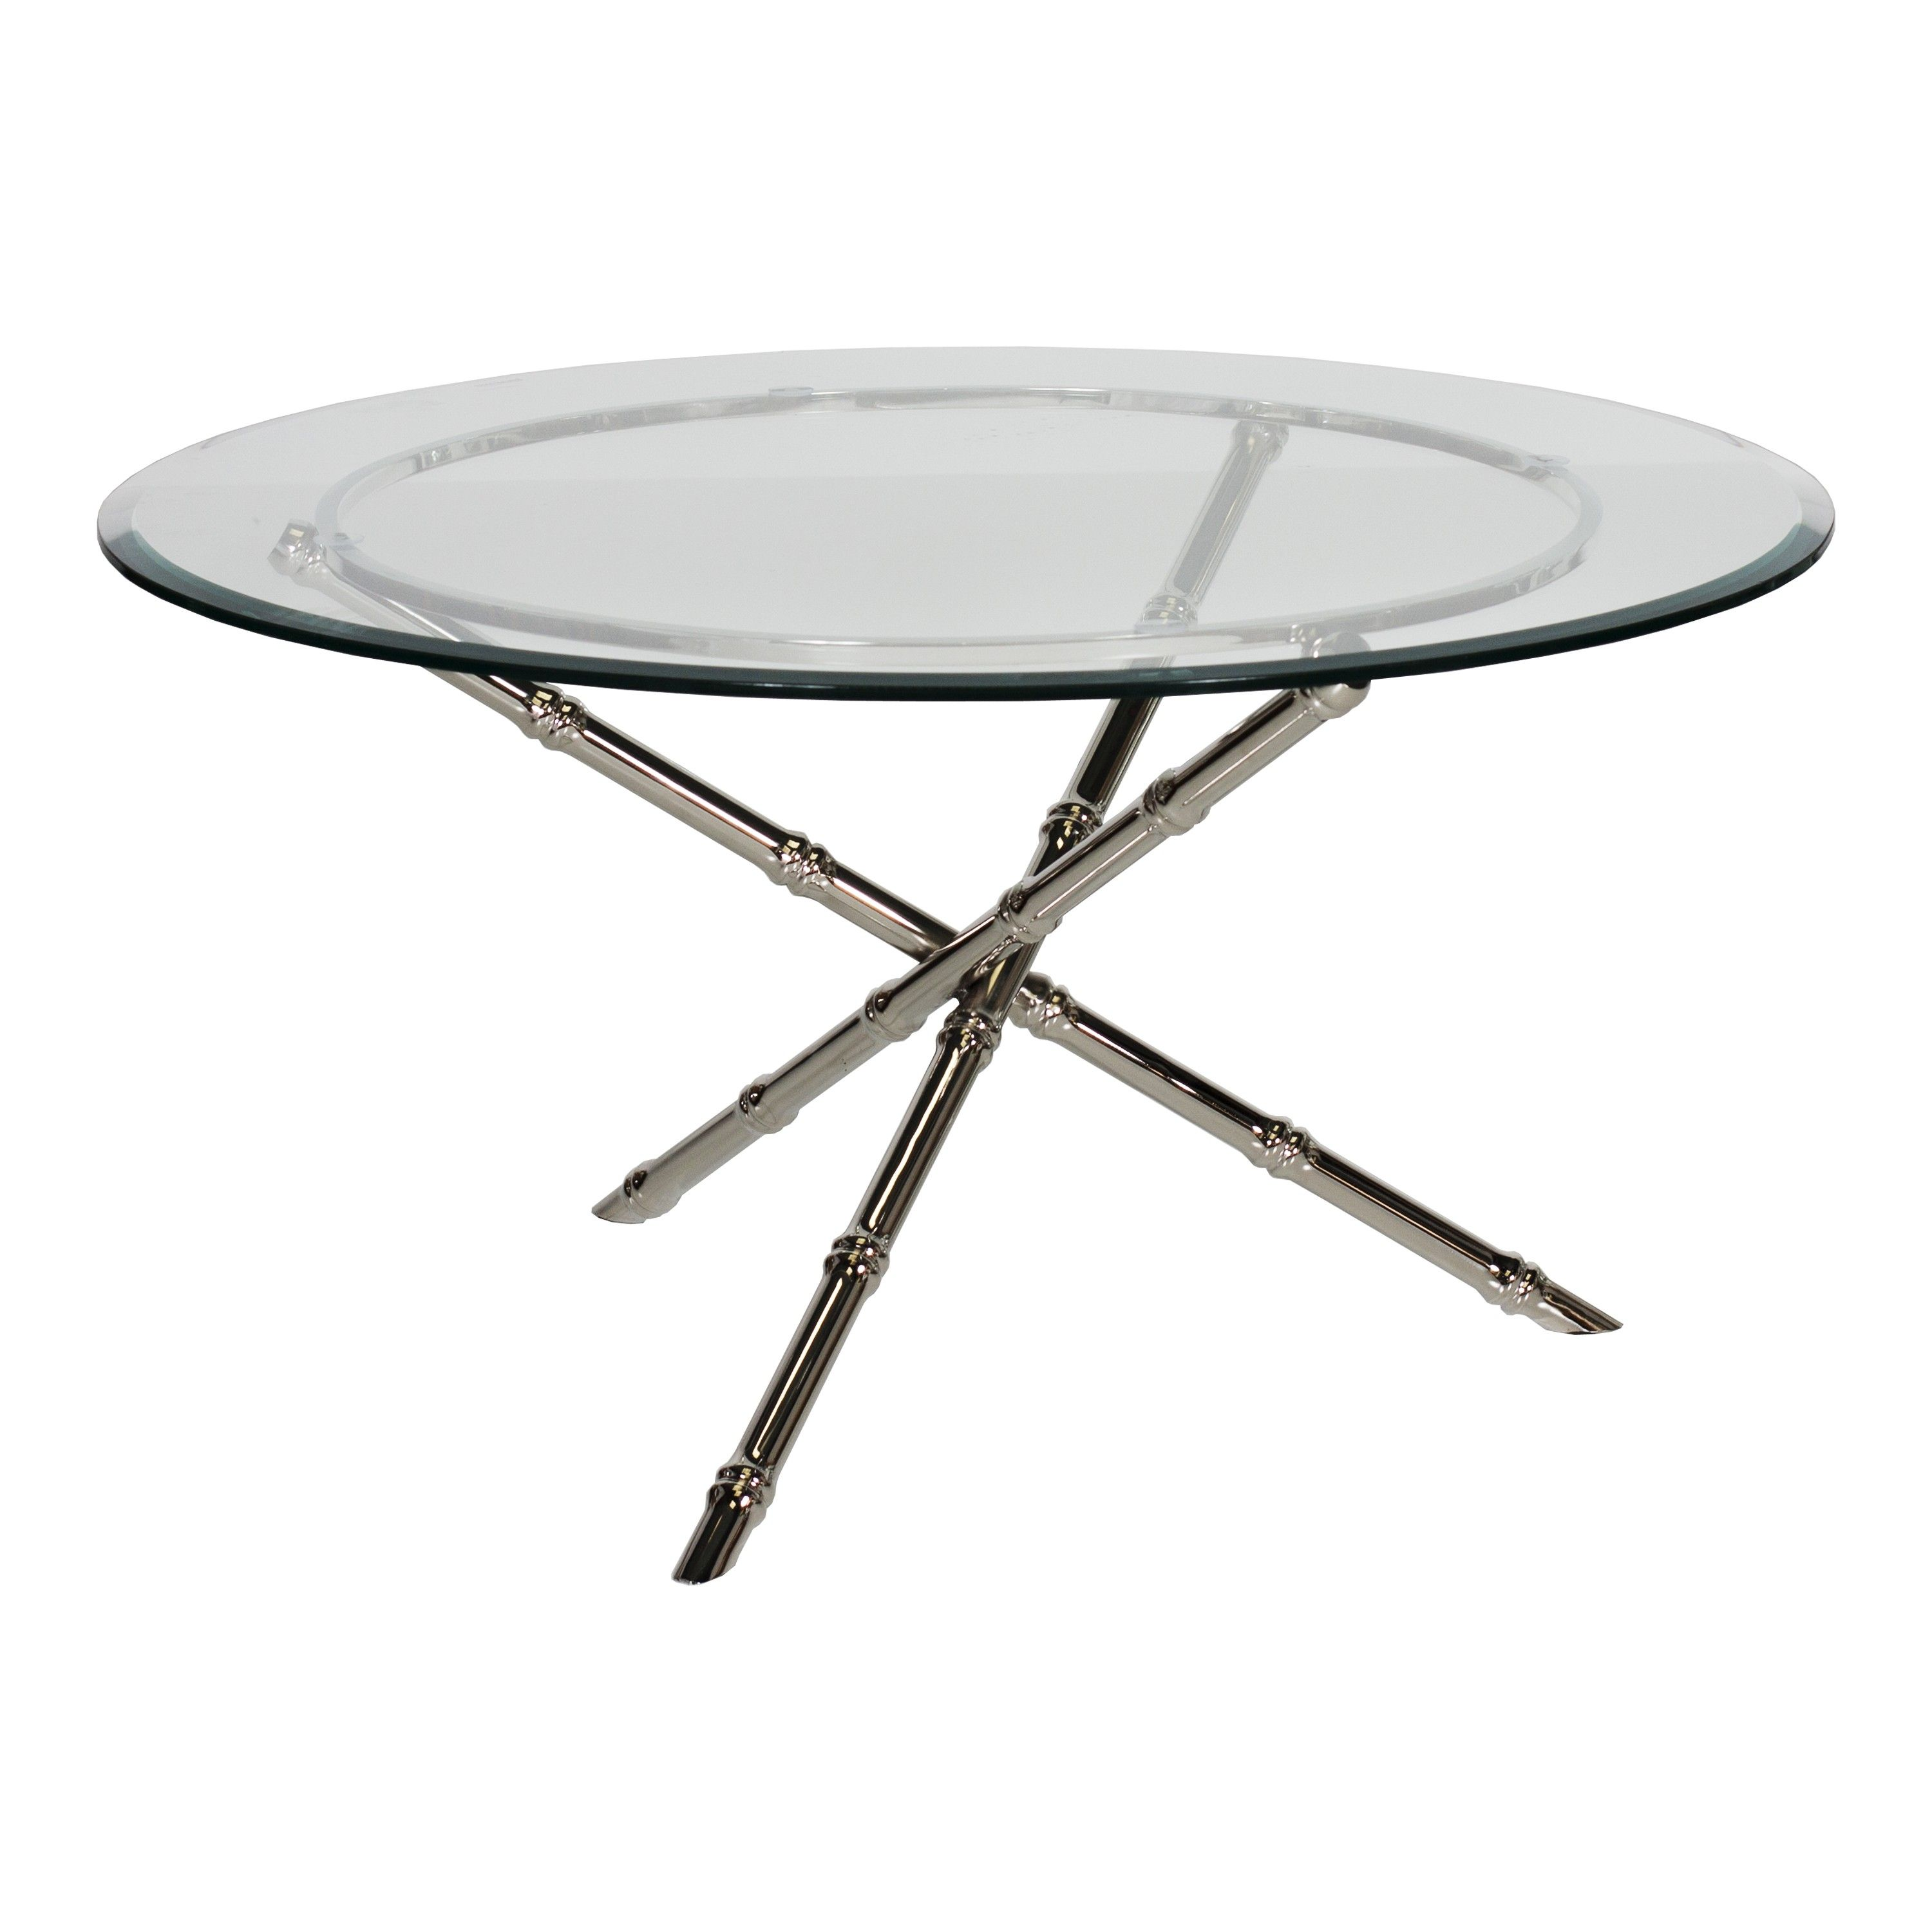 Avery n36 nickel plated bamboo coffee table base with 36 avery n36 nickel plated bamboo coffee table base with 36 diameter glass top geotapseo Image collections